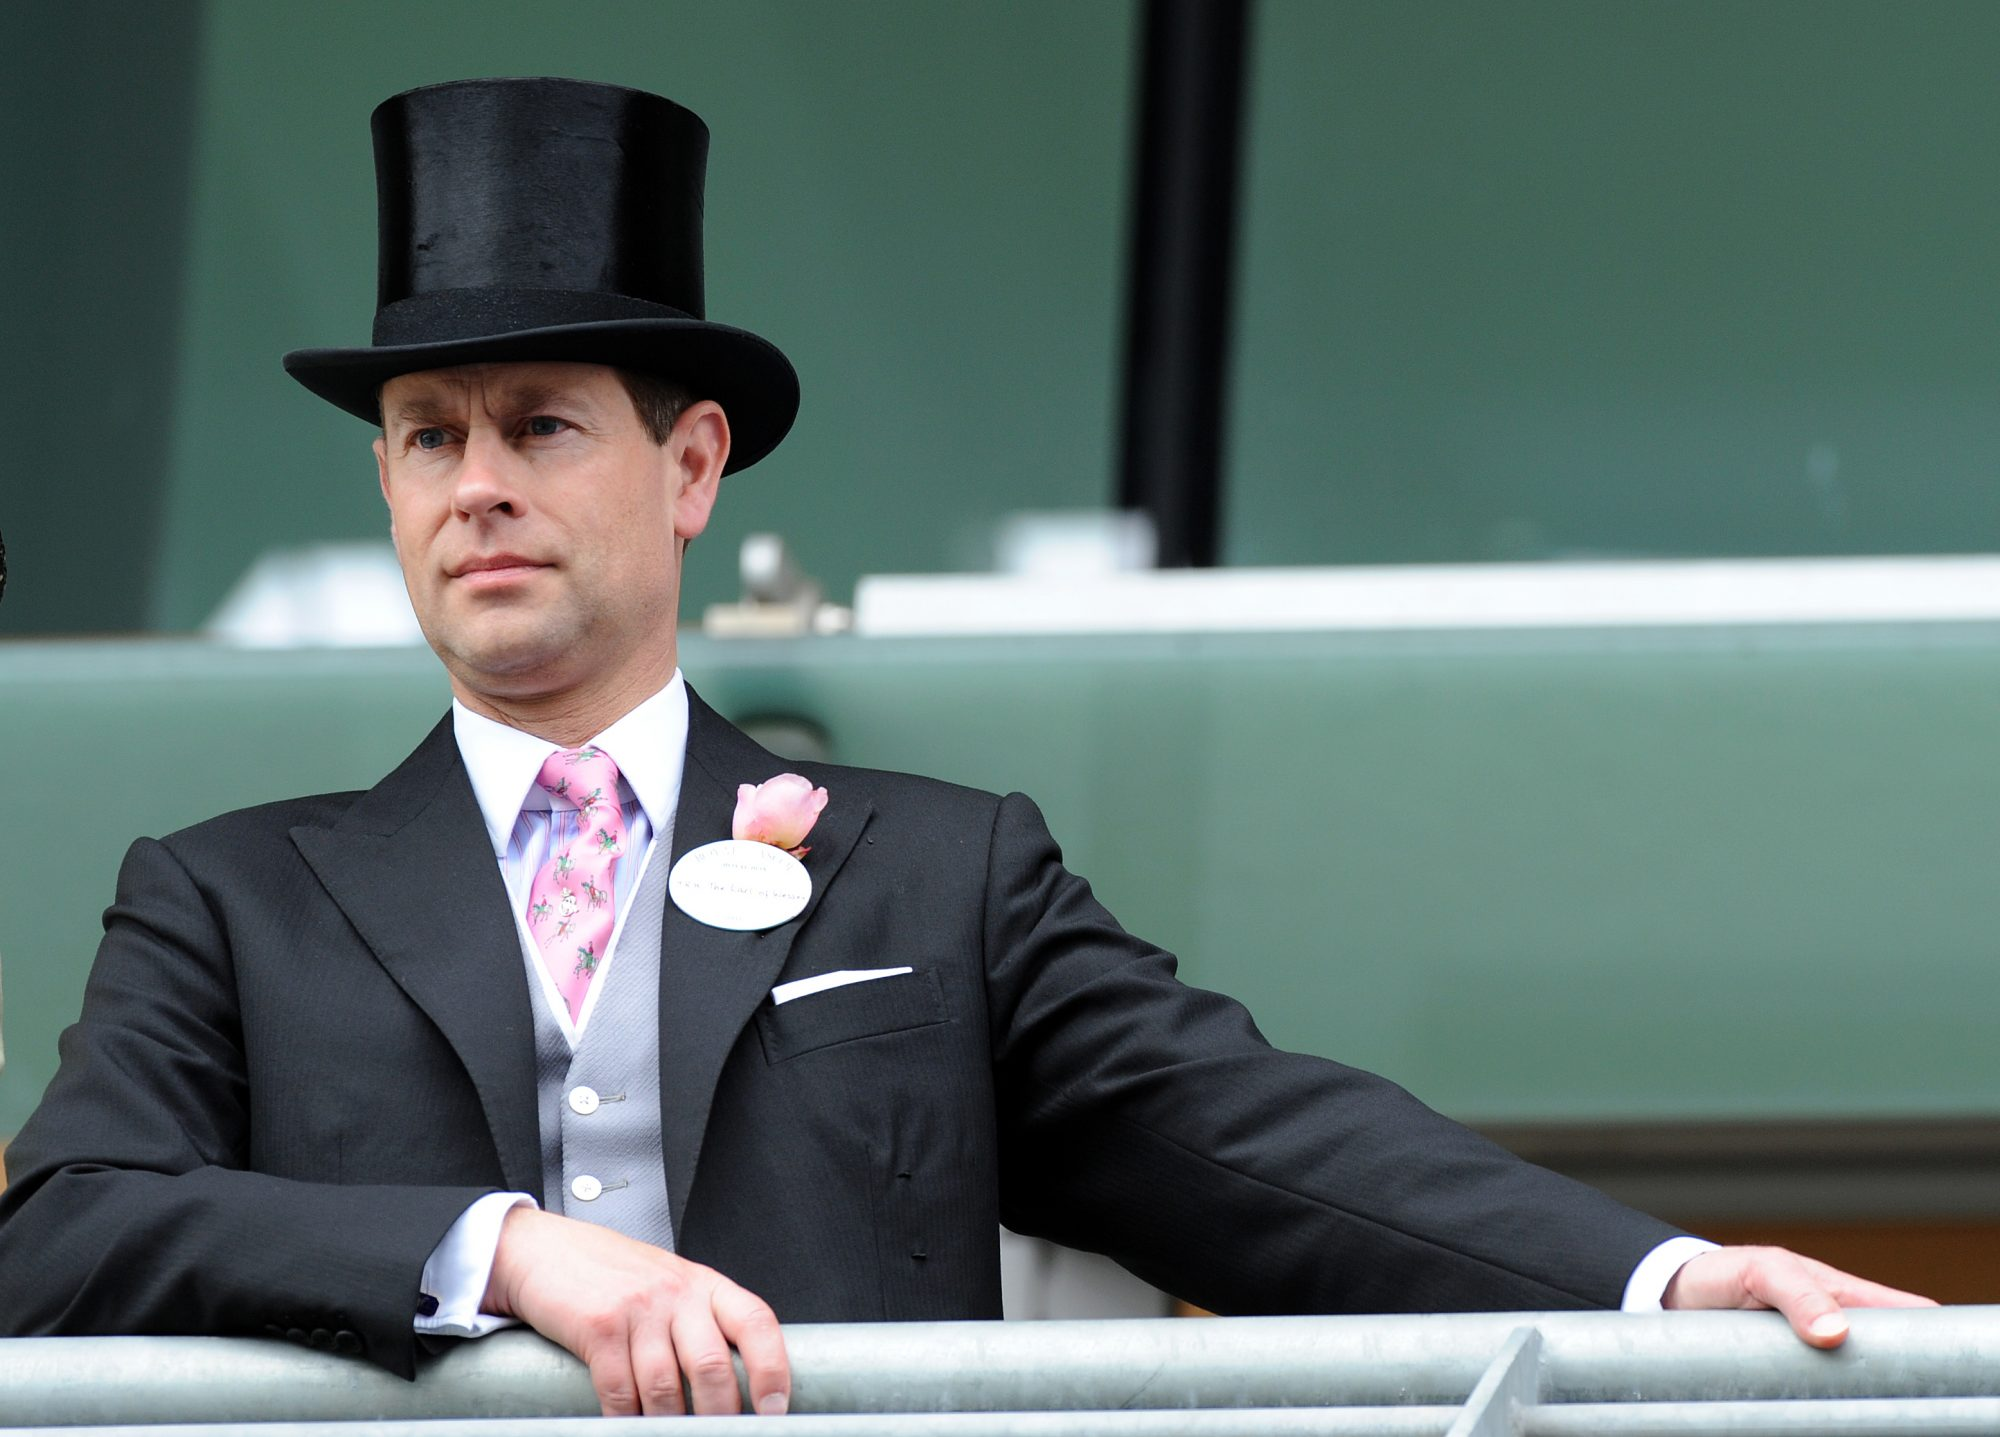 Prince Edward Full Name